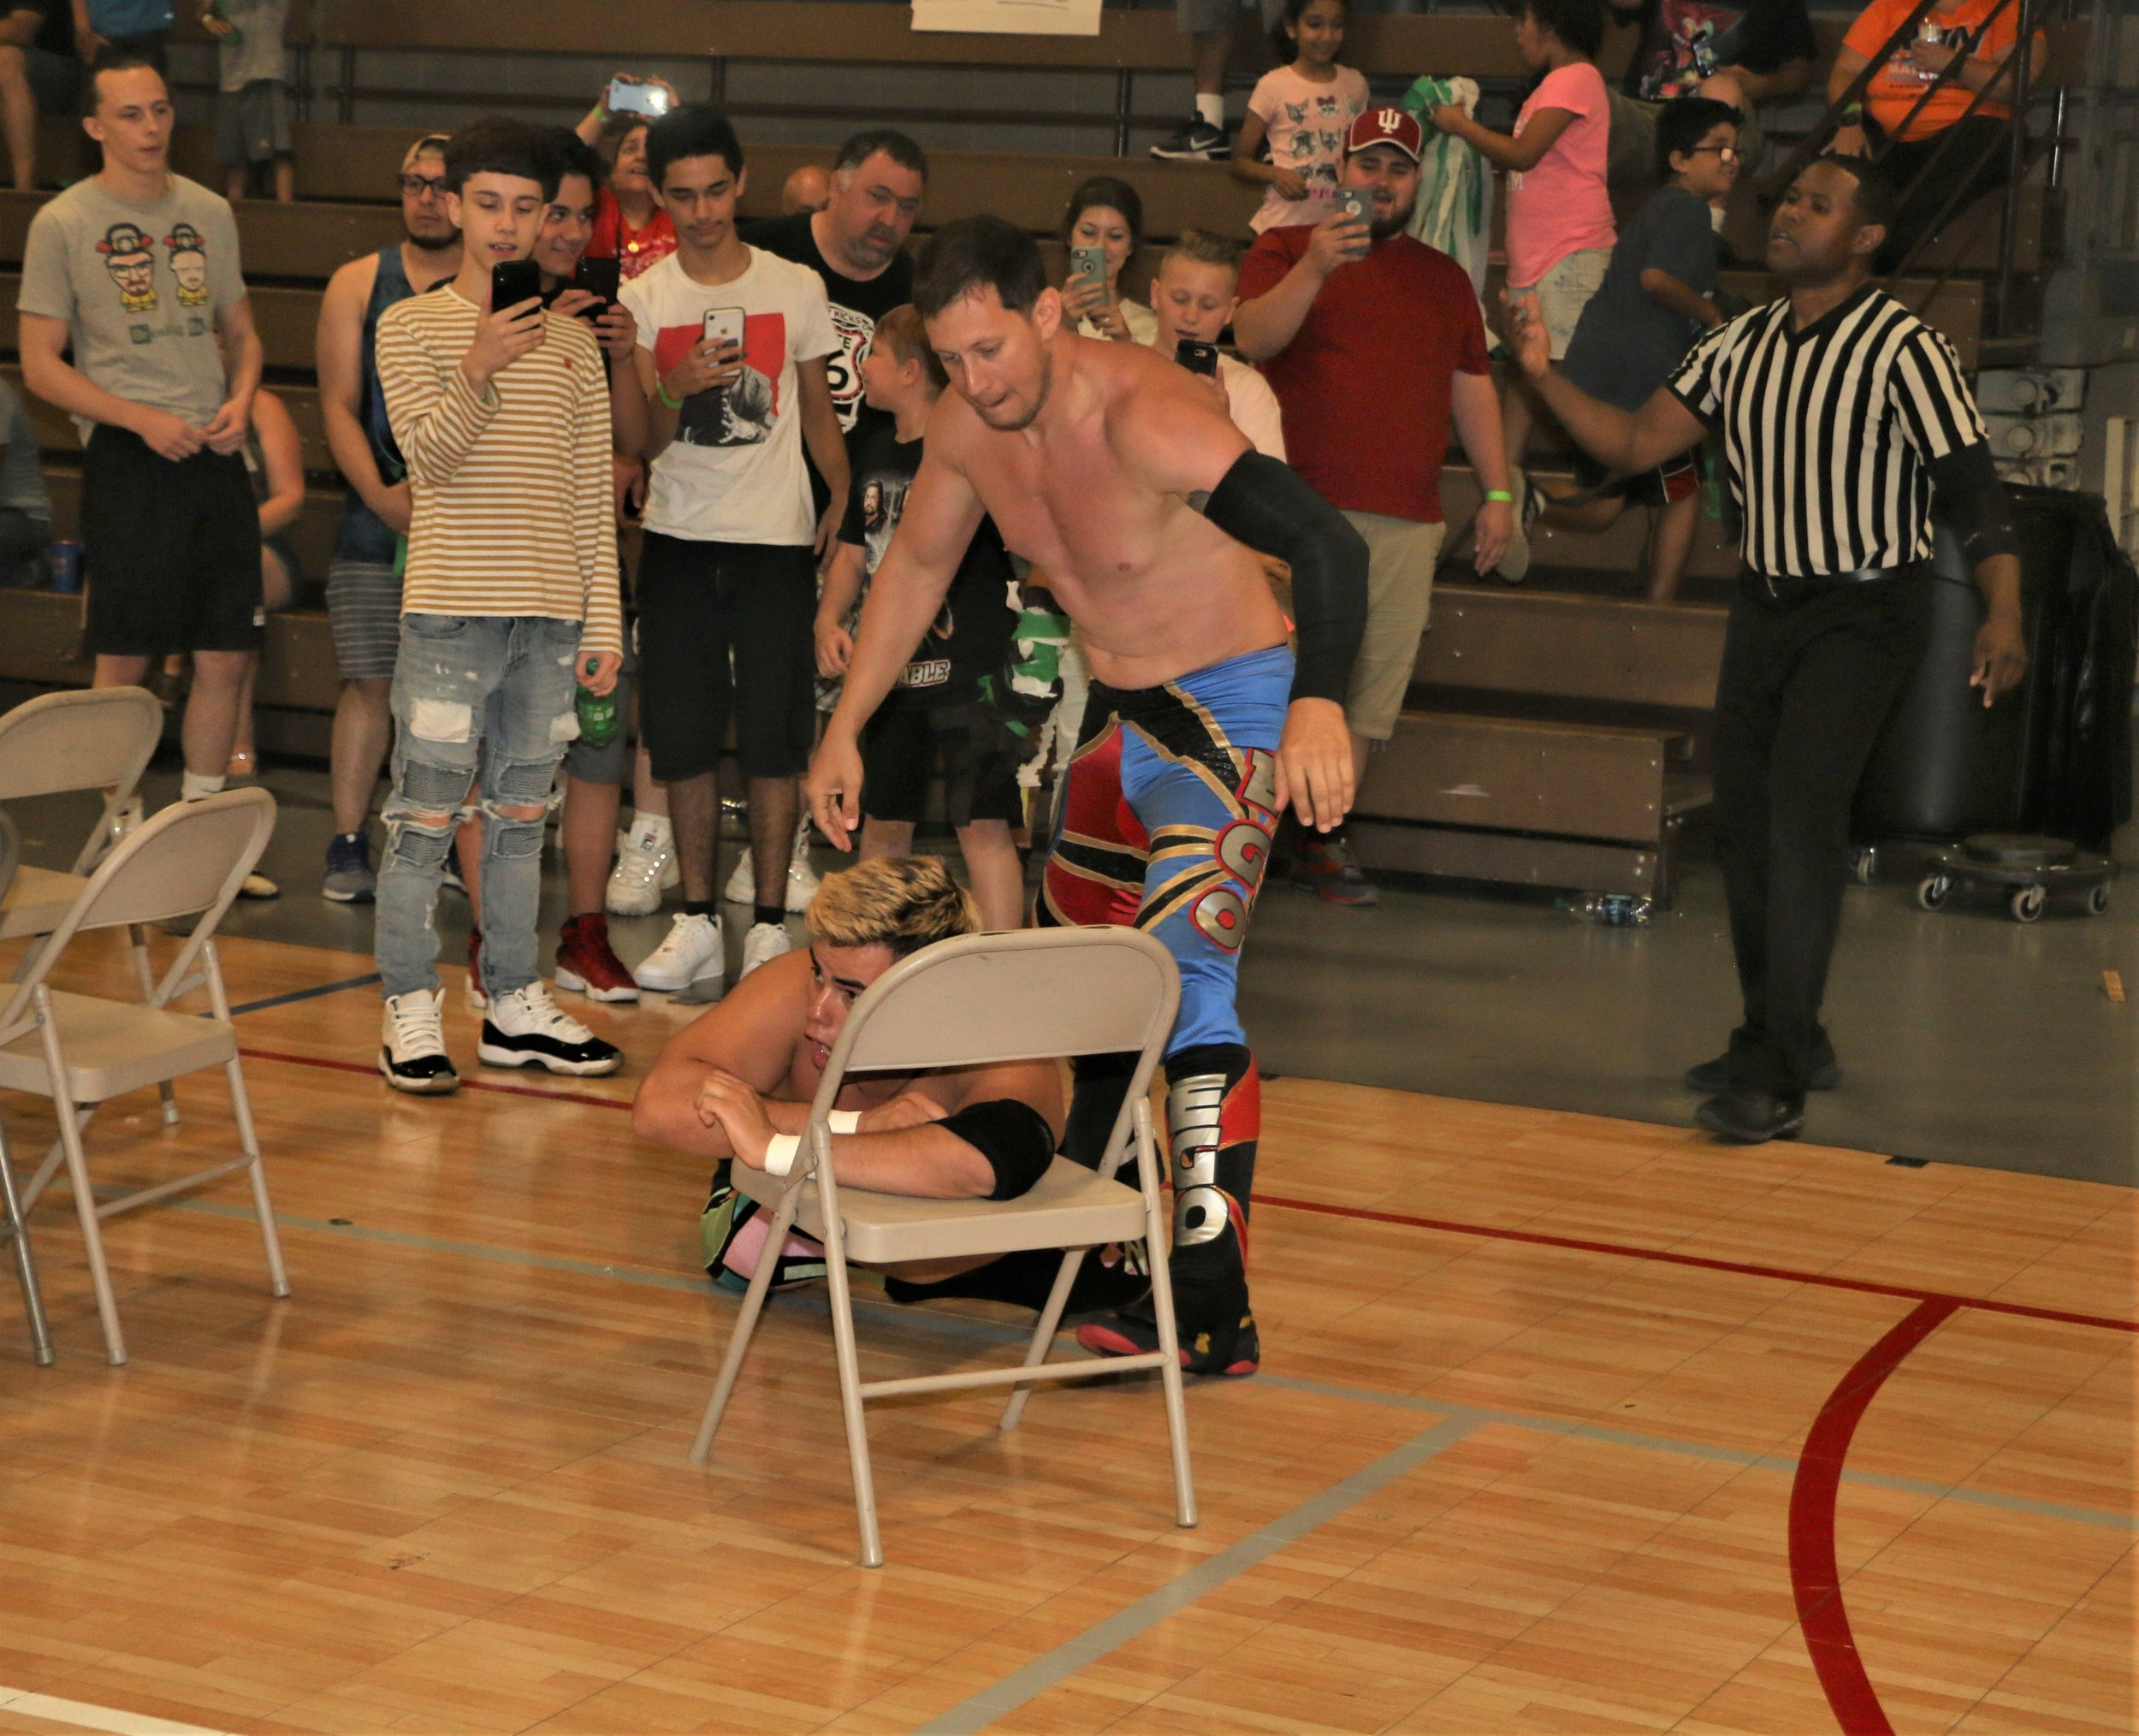 """Robert """"Ego"""" Anthony sets up Joe Alonzo on a chair at ringside."""